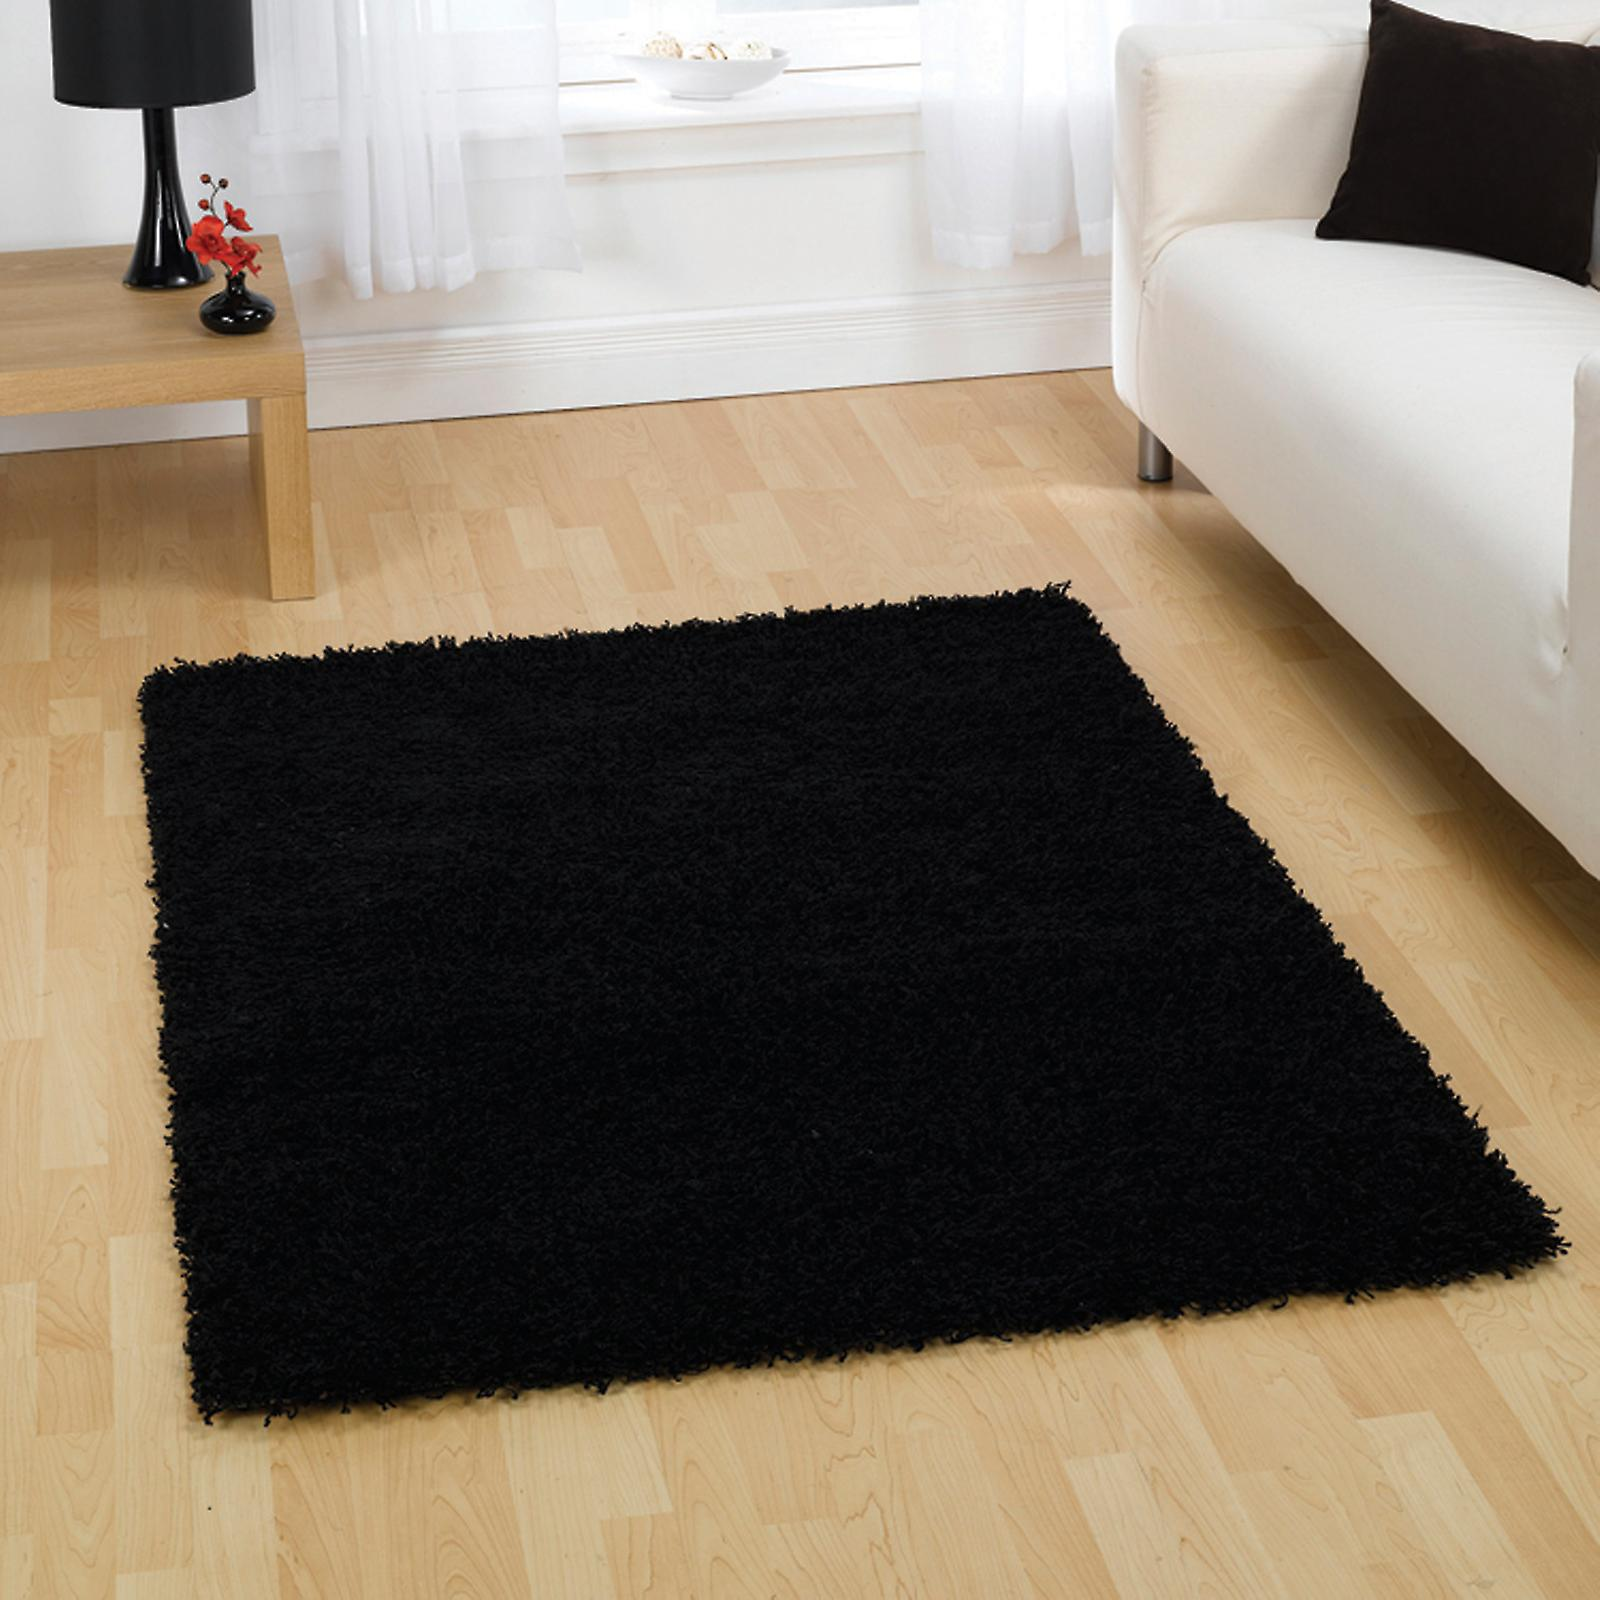 Cariboo Shaggy Rugs In Black